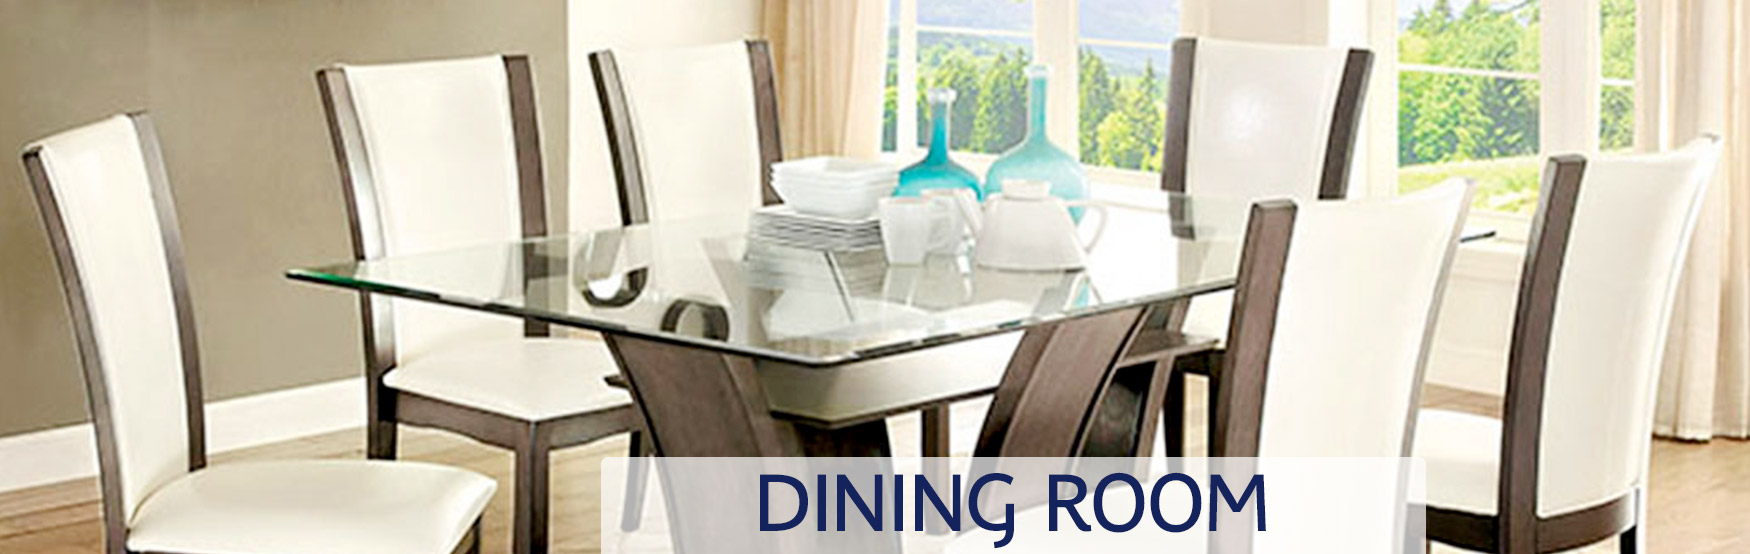 Dining Furniture Banner